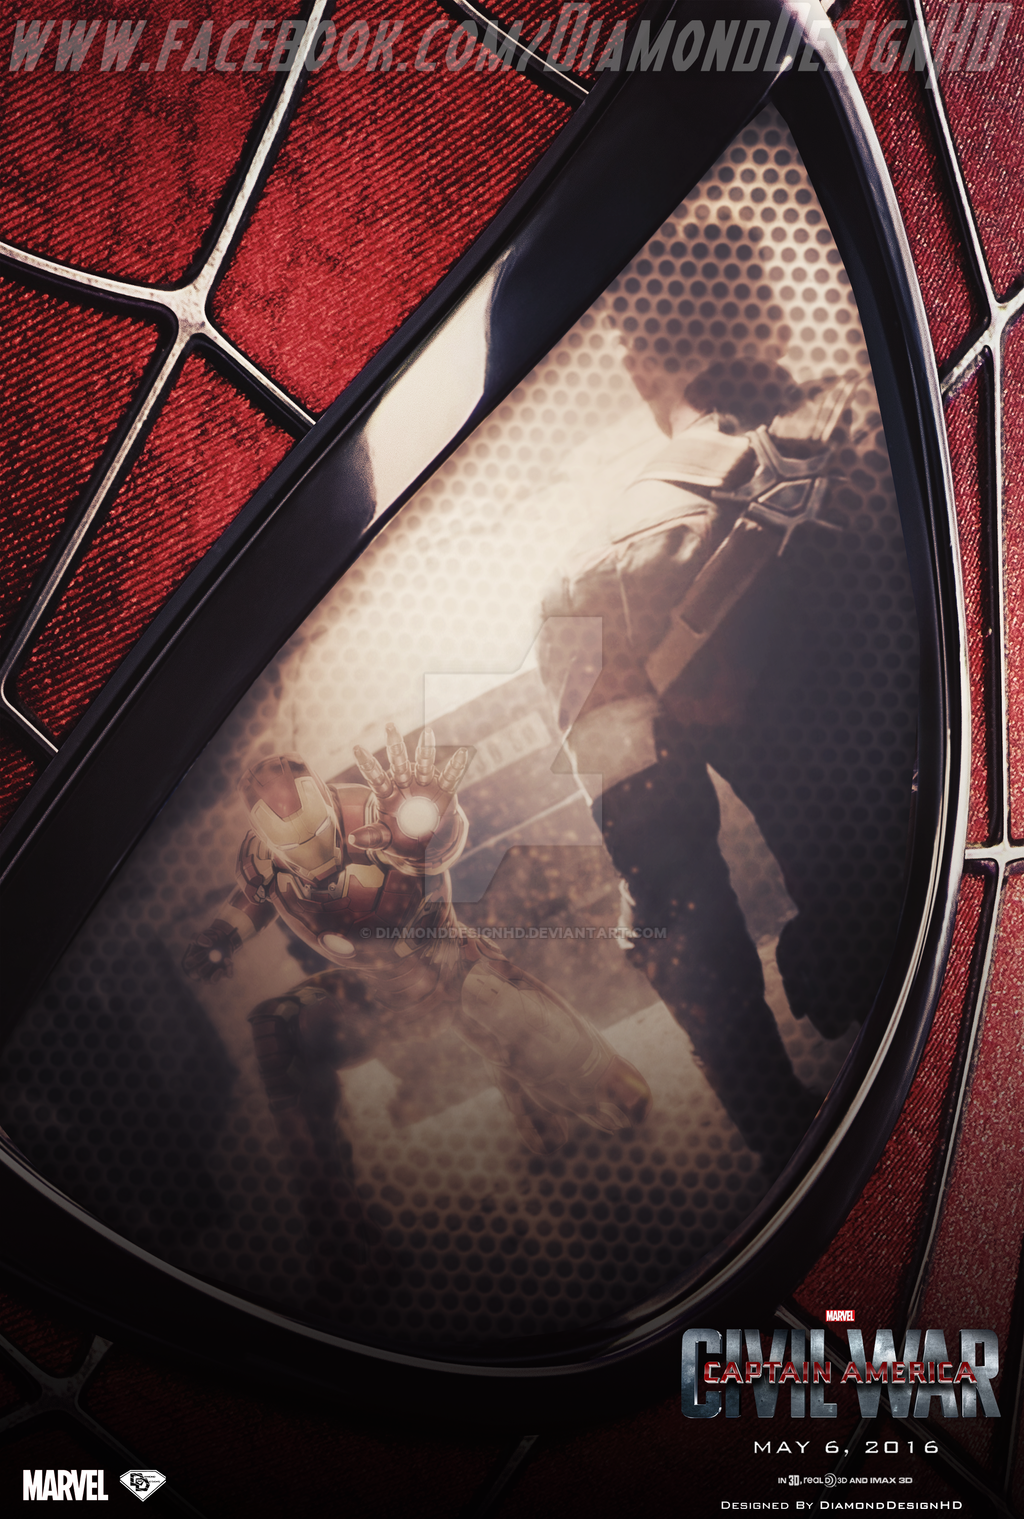 Captain America: Civil War (FAN MADE) Teaser by DiamondDesignHD on ... The Bag Man Movie Poster